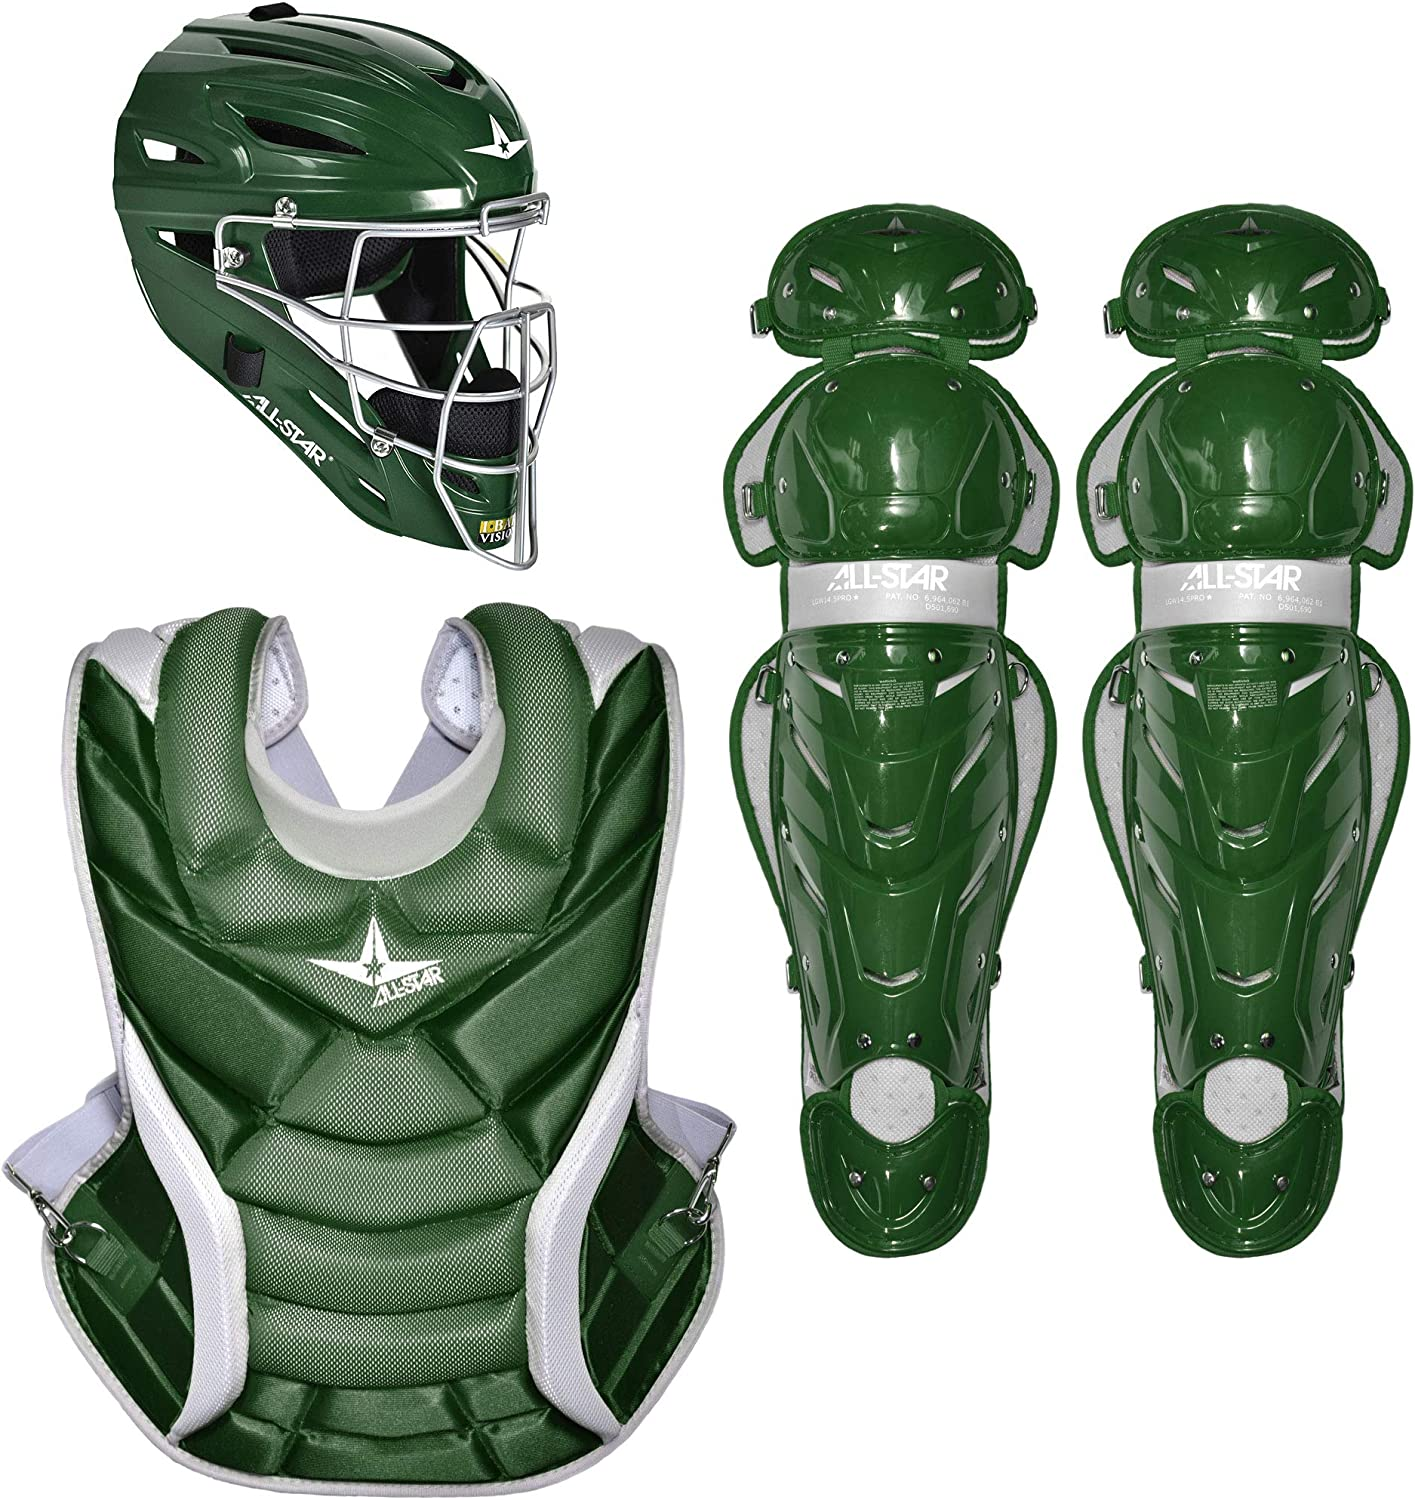 All-Star Womens Players Series Fastpitch Chest Protector